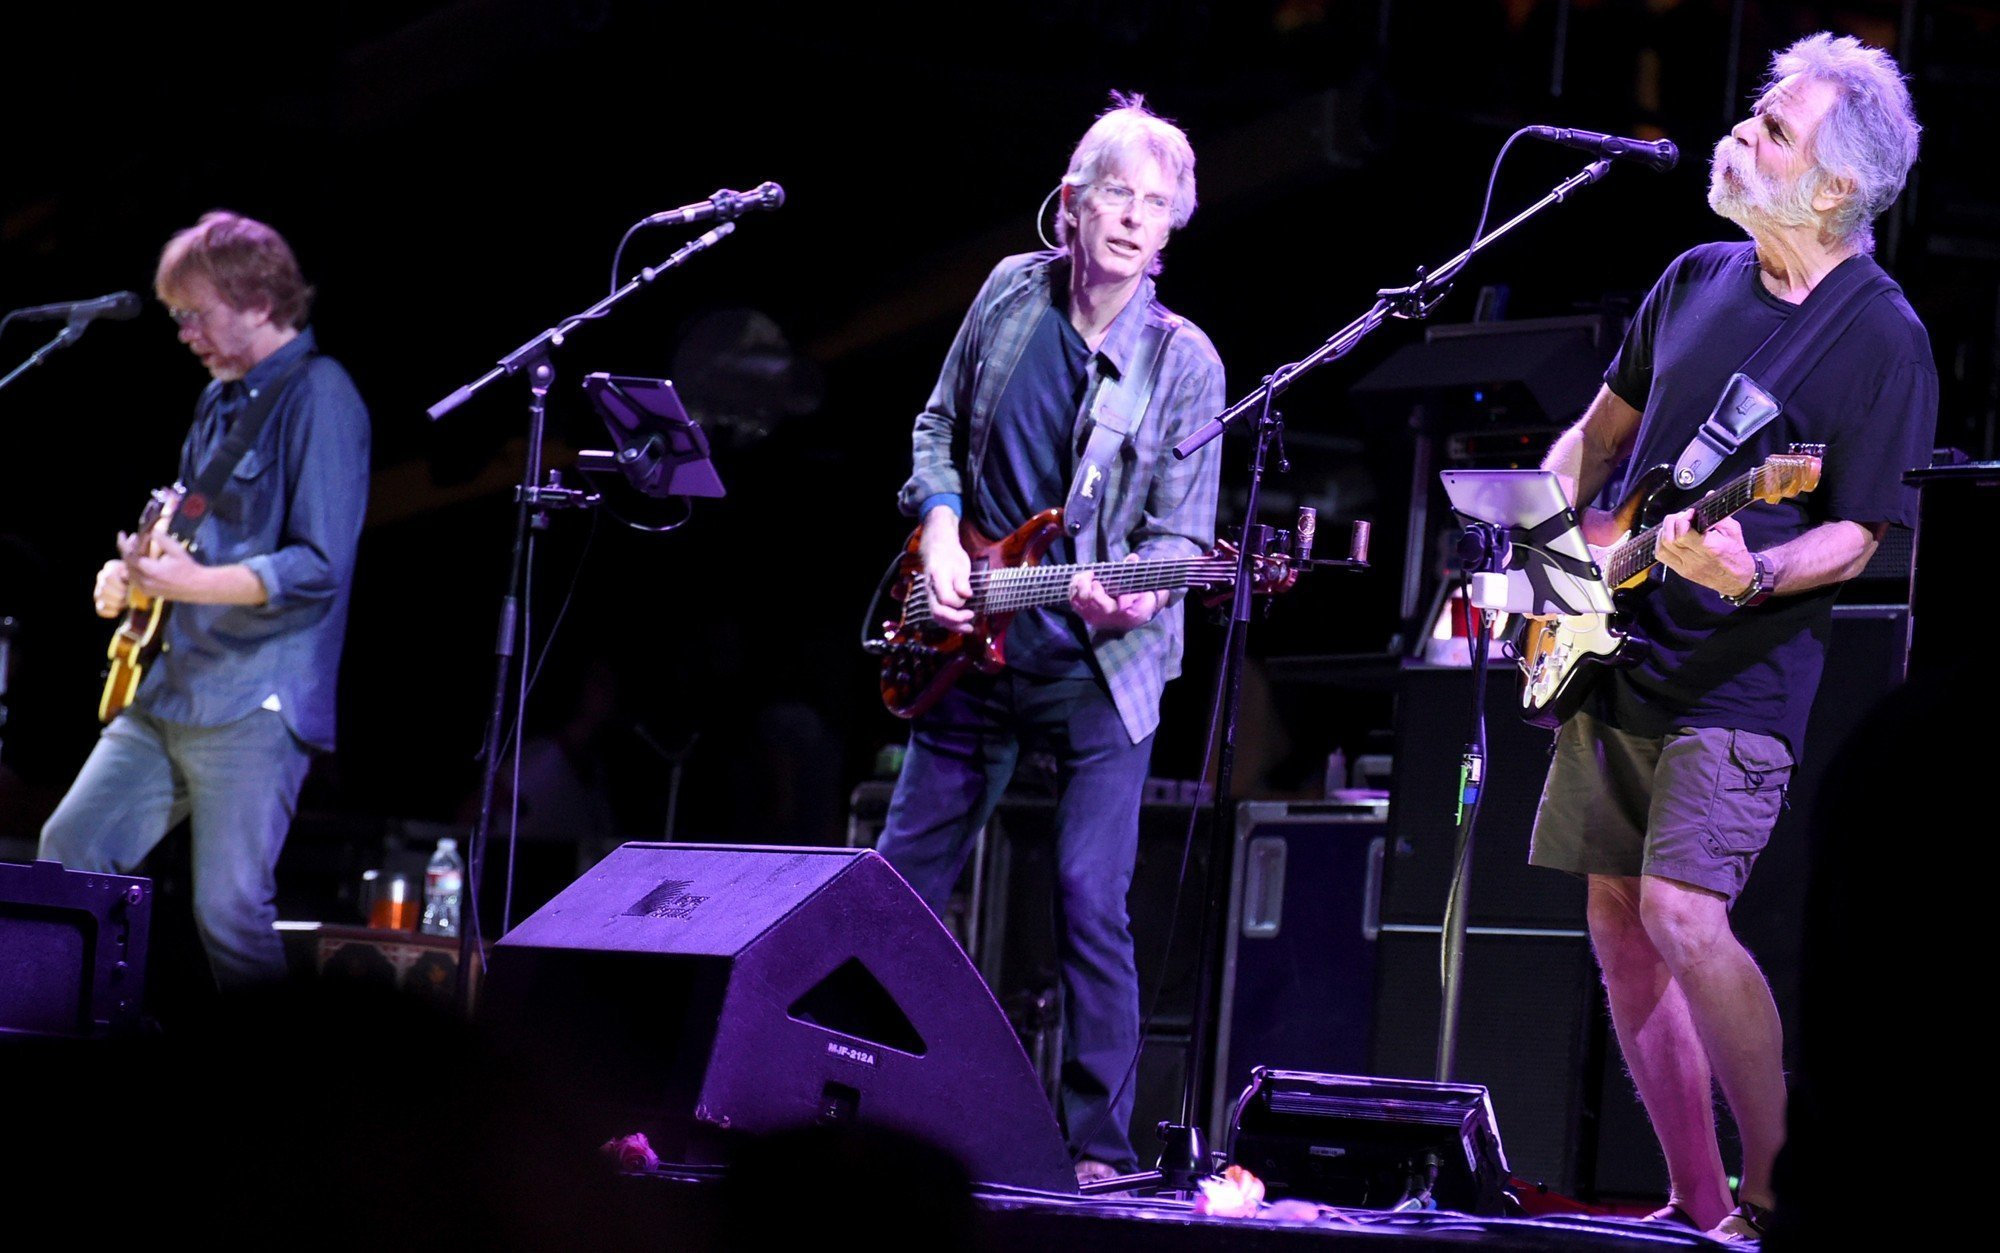 grateful dead 39 s bob weir and phil lesh coming to chicago for duo tour orlando sentinel. Black Bedroom Furniture Sets. Home Design Ideas